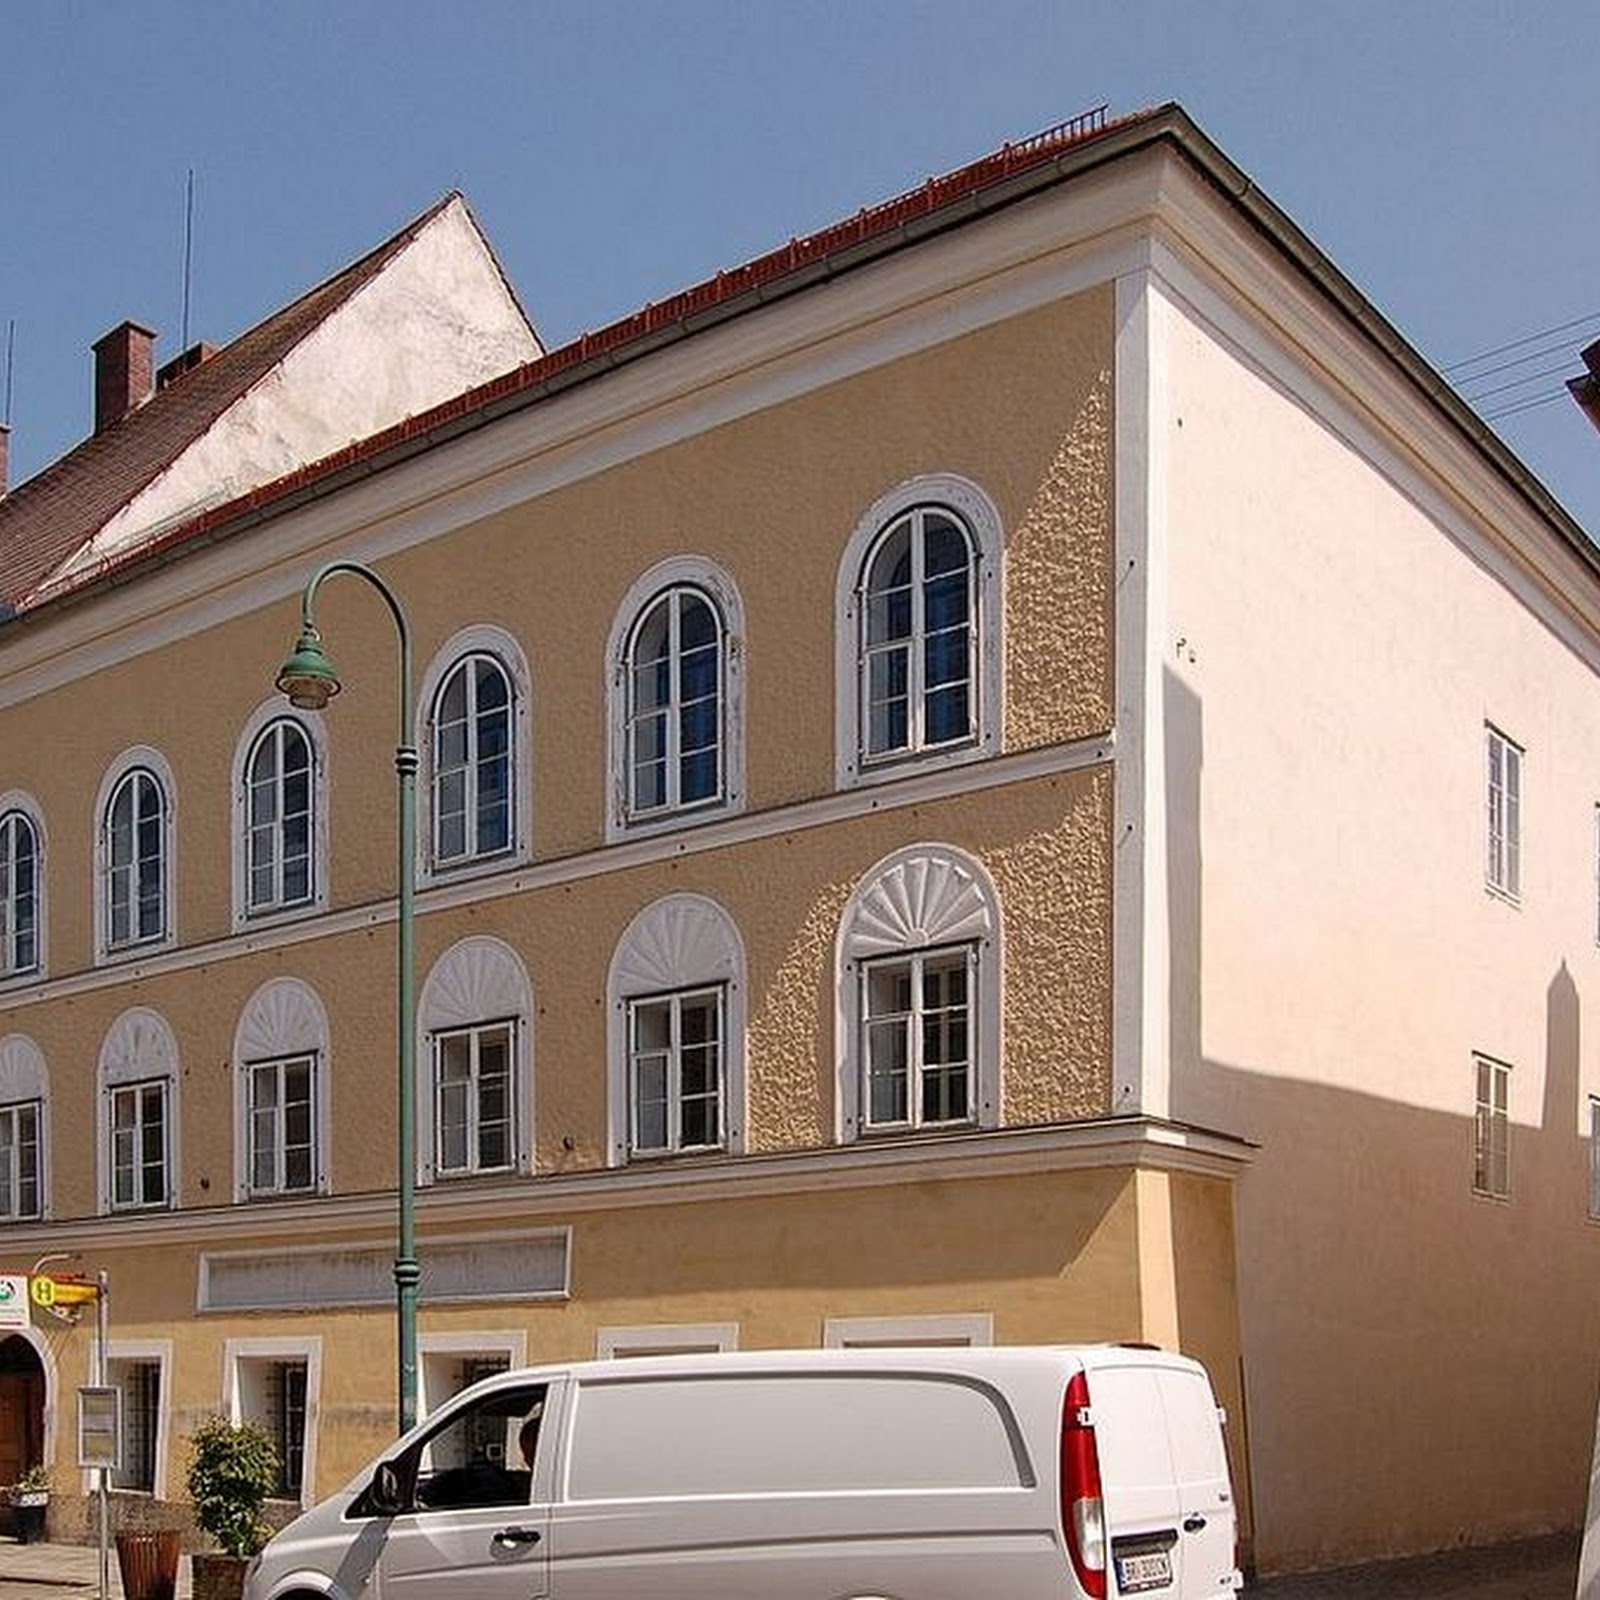 The House Where Hitler Was Born